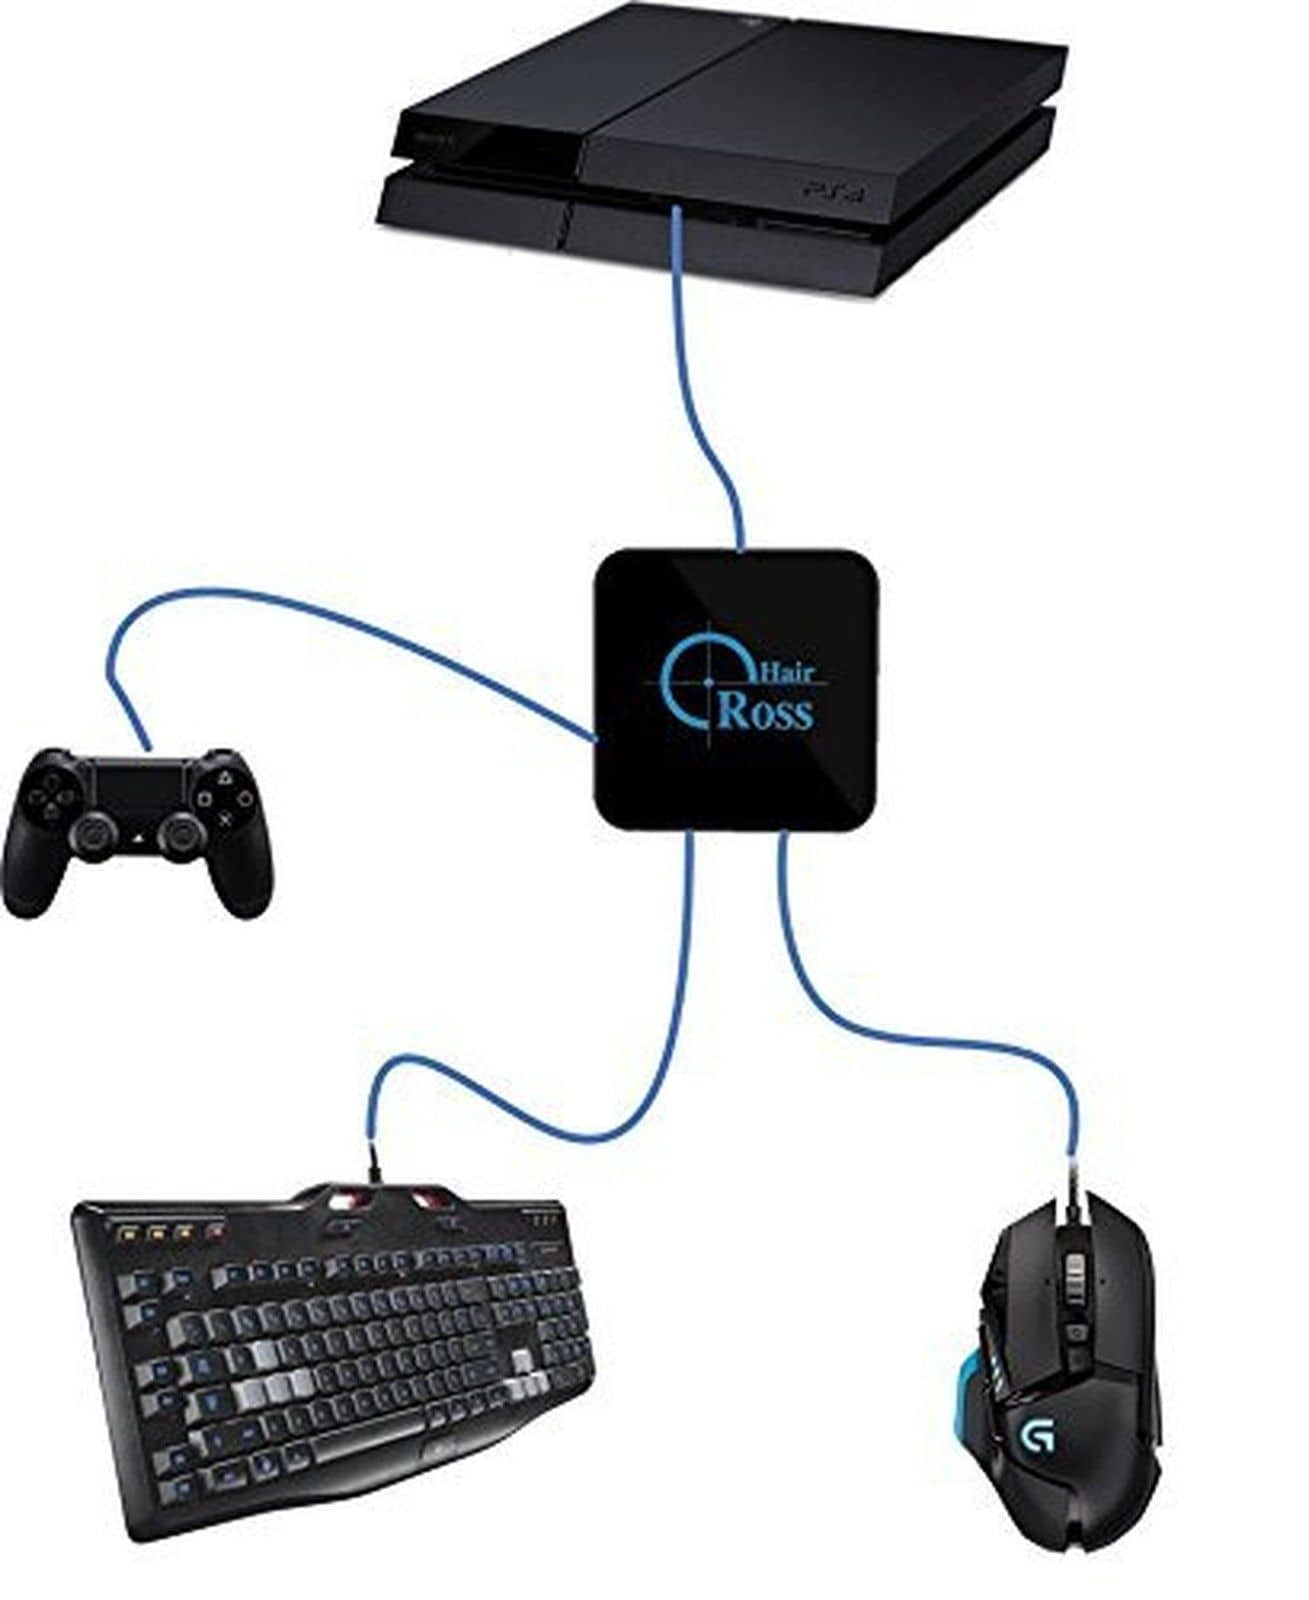 Reasnow CrossHair Keyboard Mouse Converter Controller Adapter for PS4/PS3/Xbox One/360 Nintendo Switch G27 G25 - 4